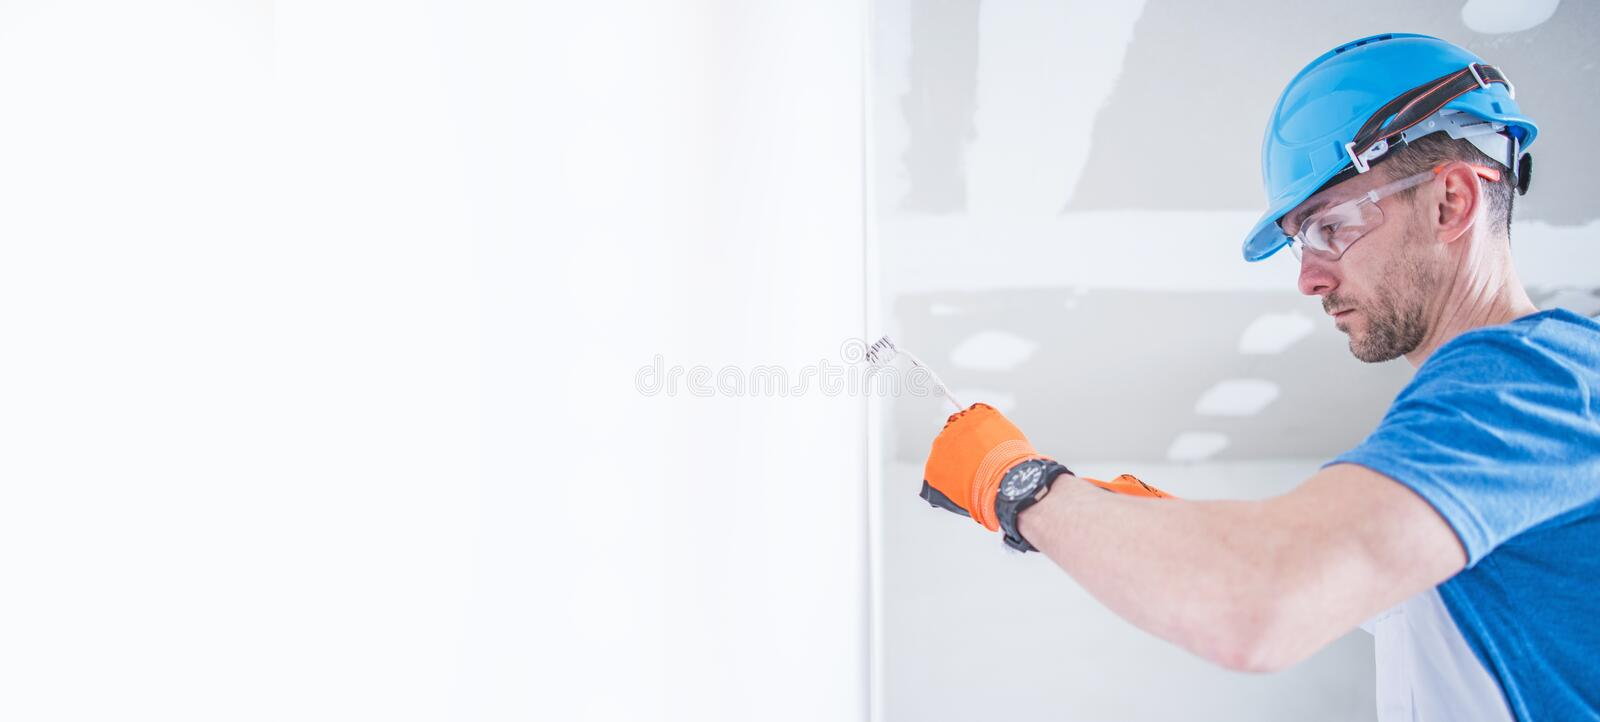 Electrician Work Banner stock images